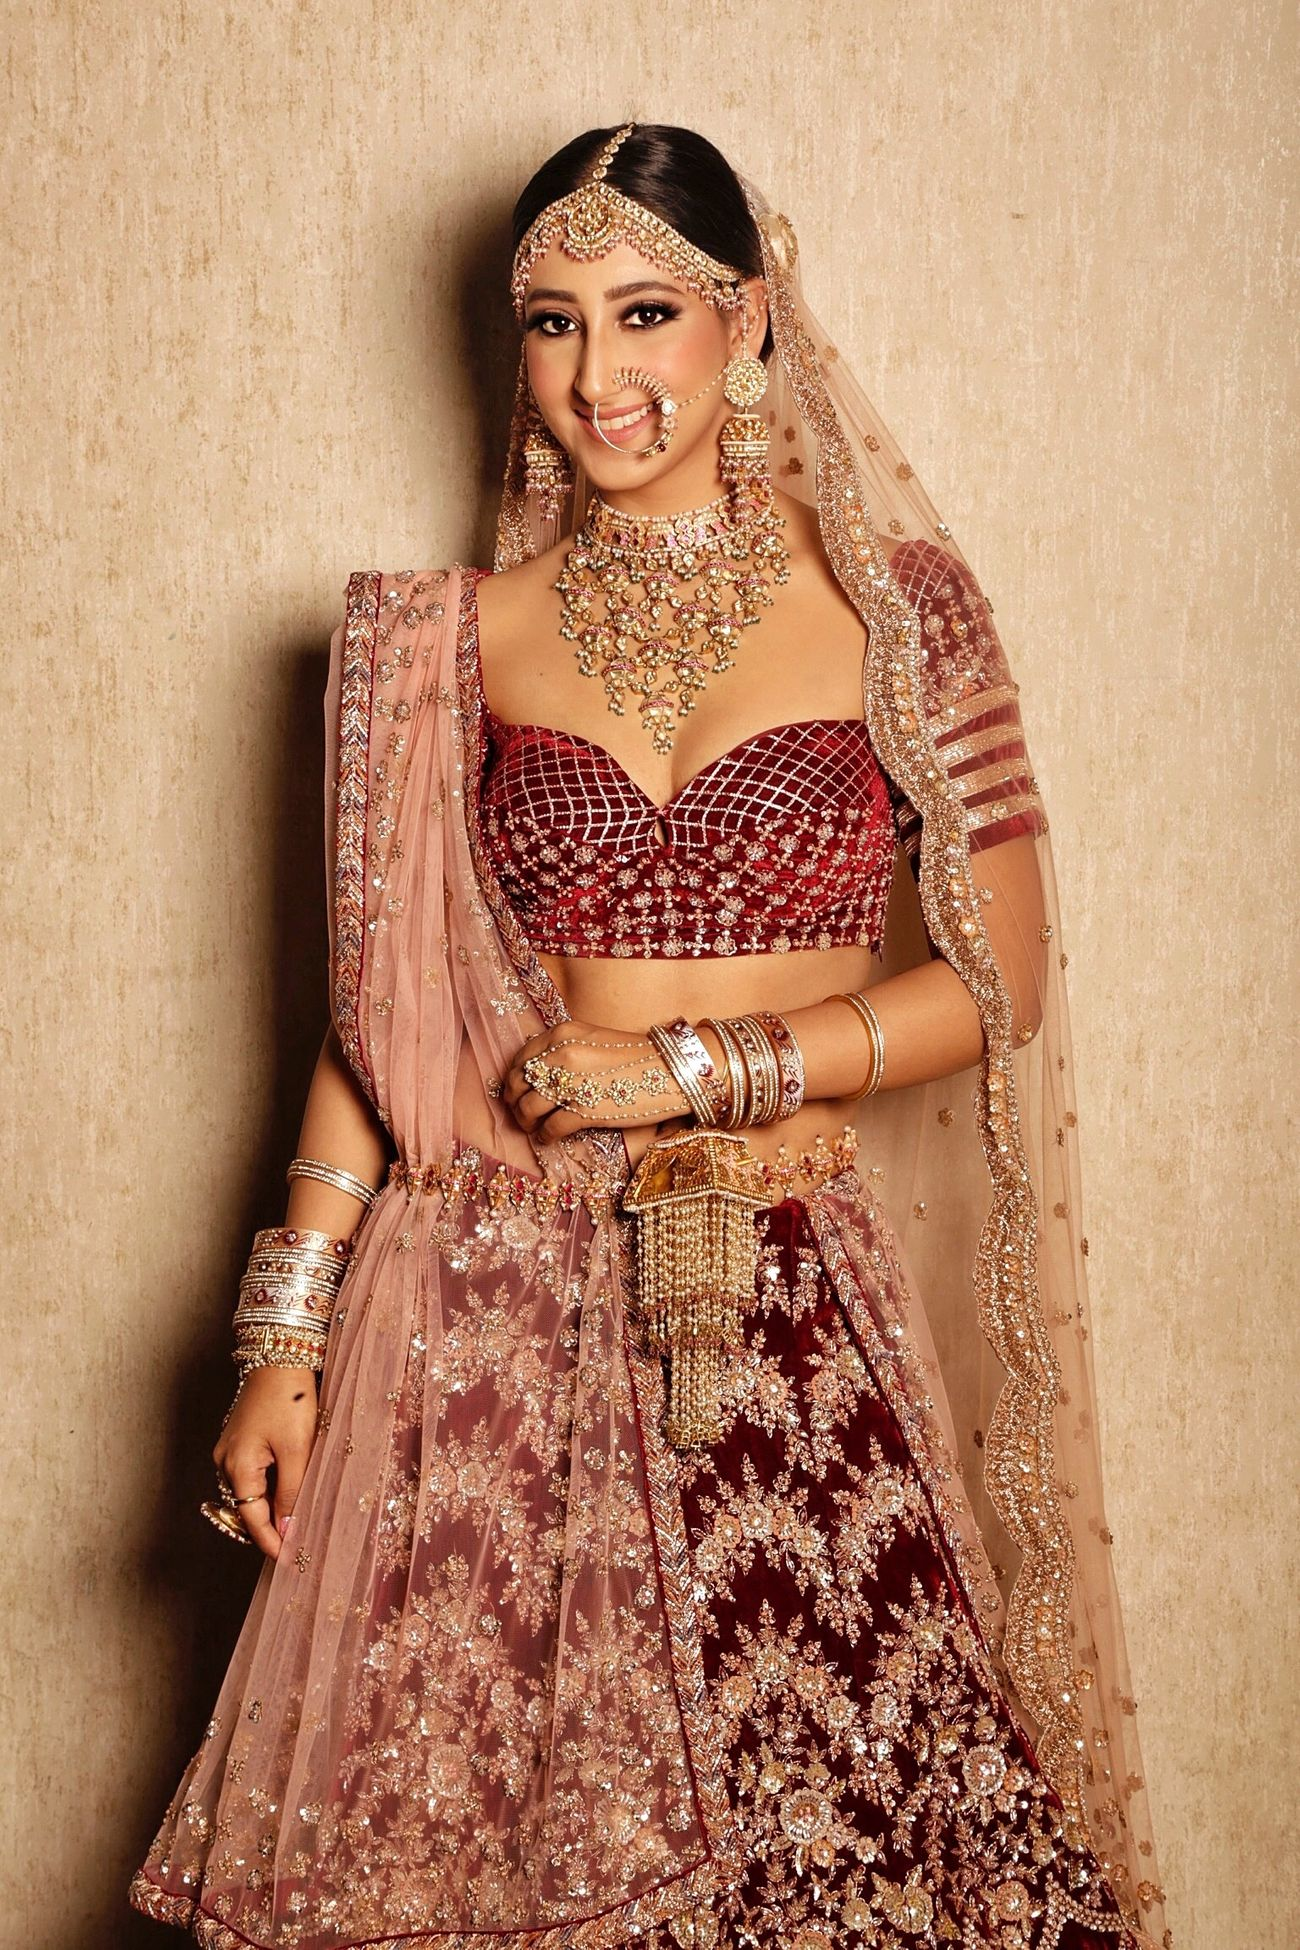 30 Stunning Blouse Designs To Consider For Your Wedding In 2019